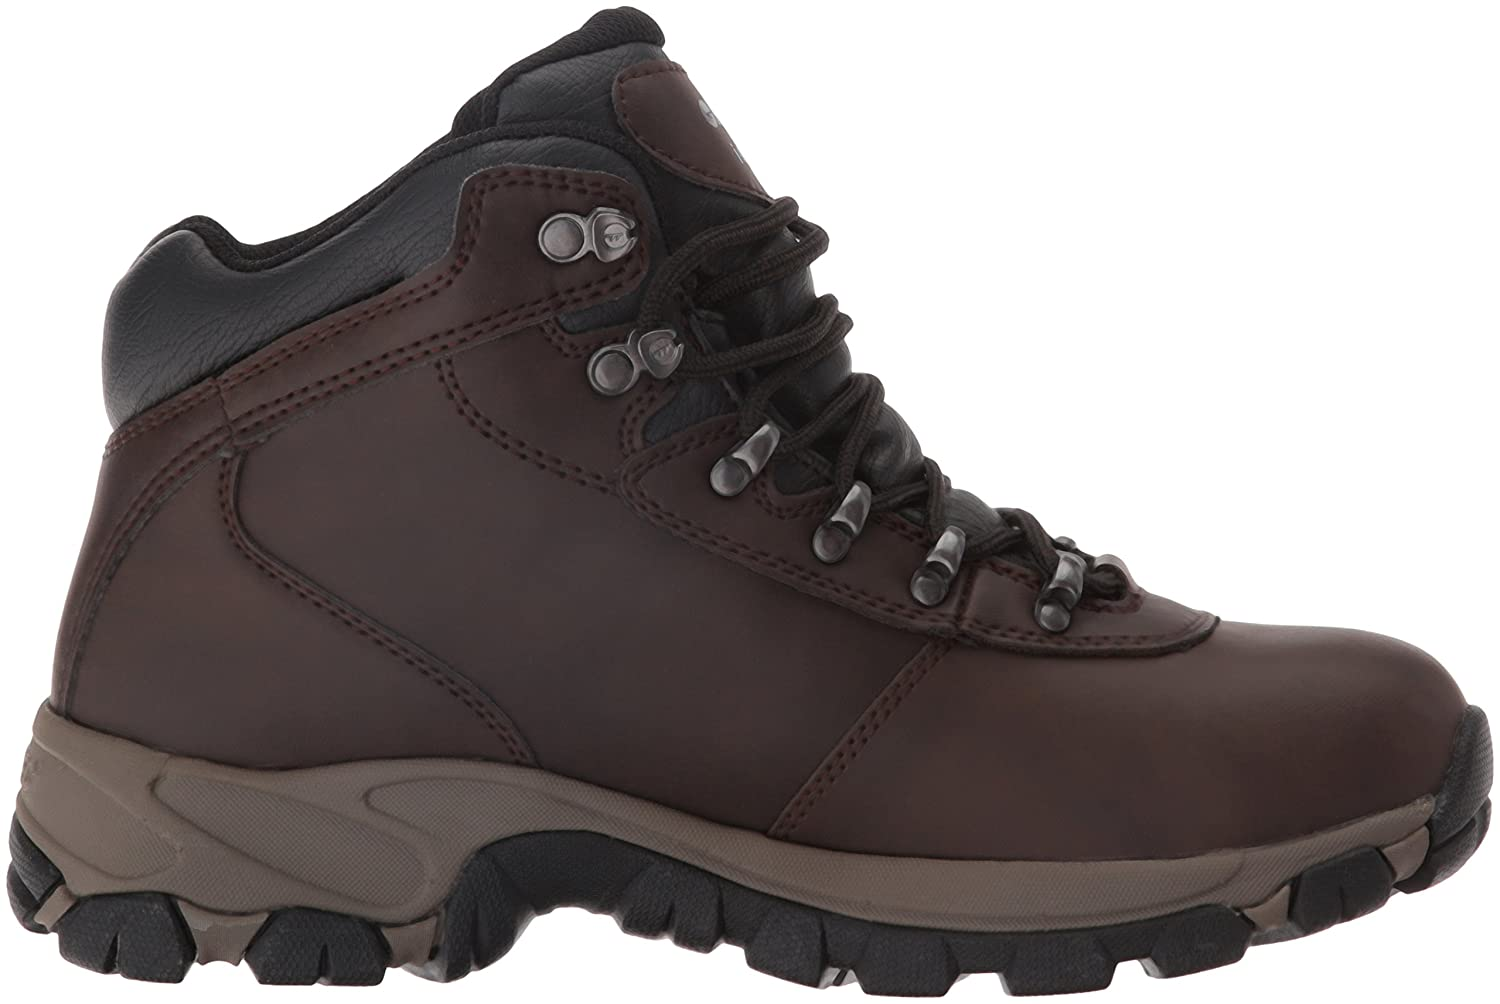 0399e7587a3 Hi-Tec Women's Altitude VI Waterproof Hiking Boot